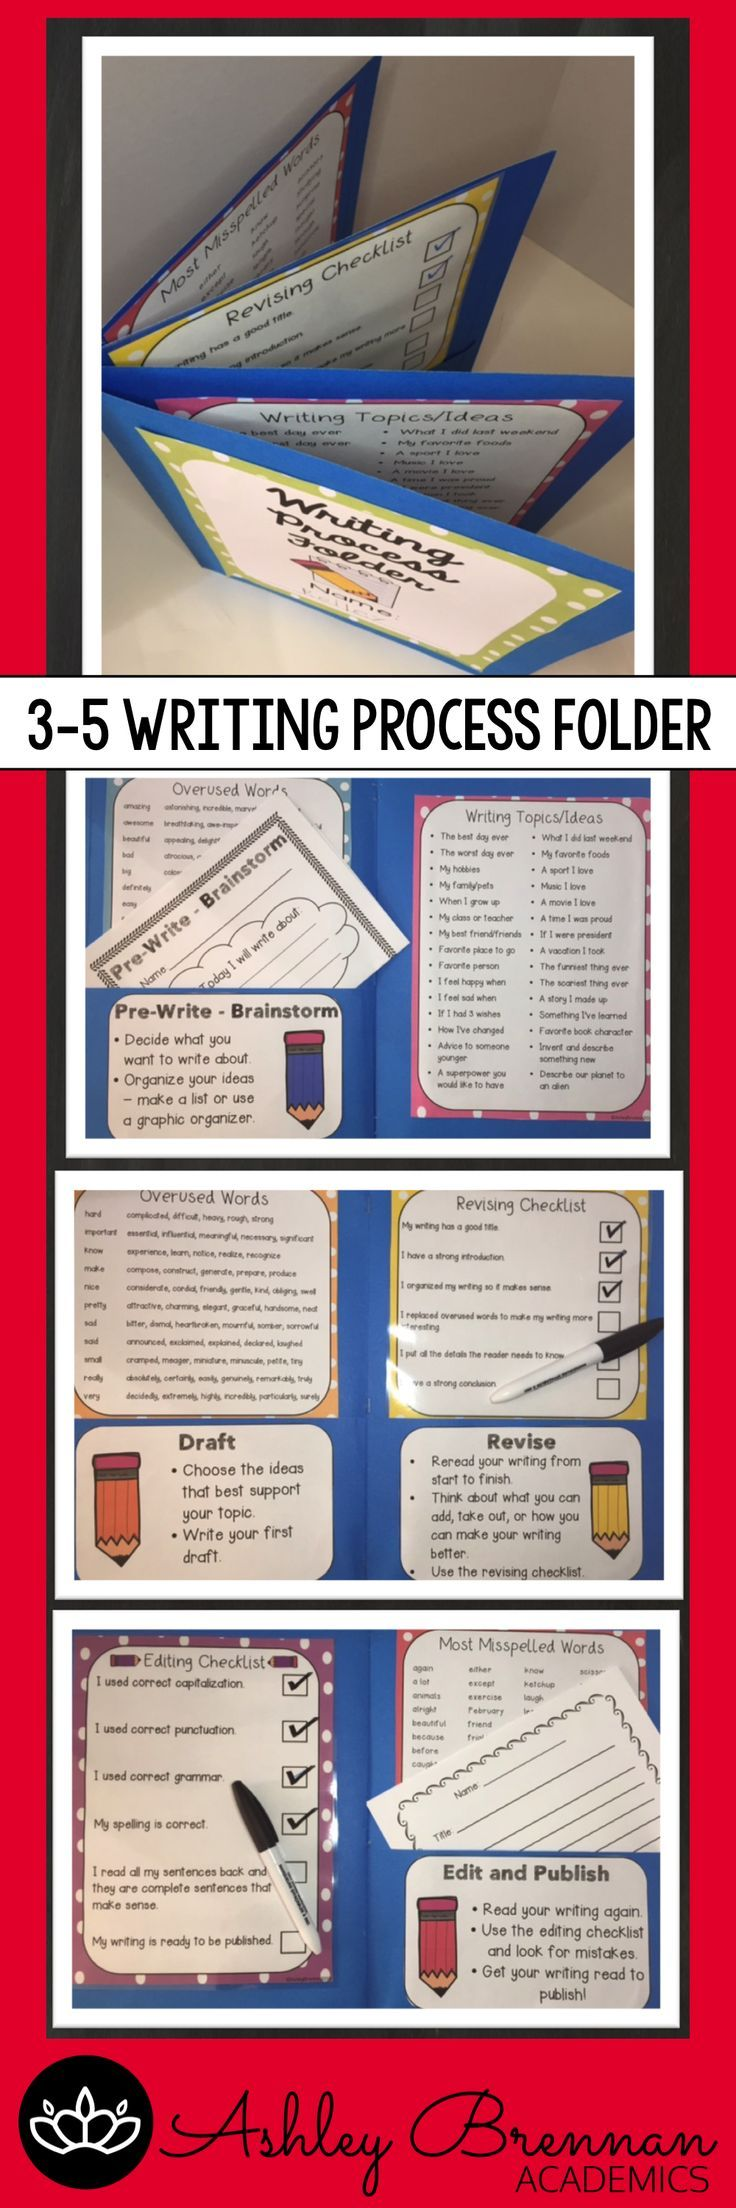 Help students through the writing process by attaching two folders.  Students can store their writing in a pocket according to what step they are in the process.  Also includes writing topic ideas, commonly misspelled and overused words, and editing checklists.  A MUST HAVE for the classroom!